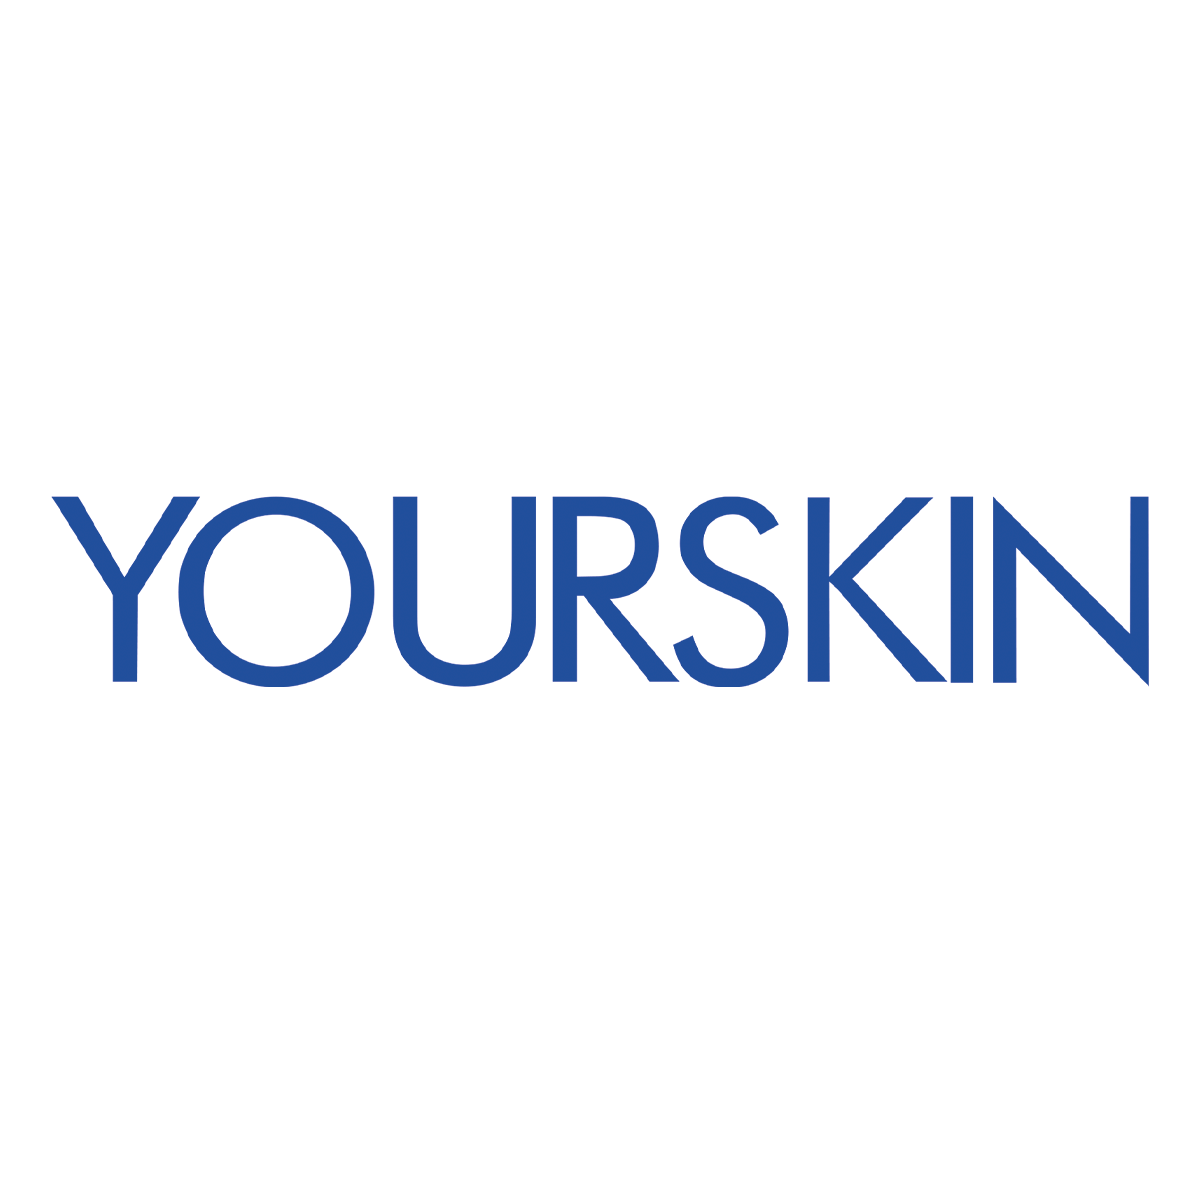 La Roche-Posay Anthelios Mineral One SPF50+ T05 dark brown 30ml